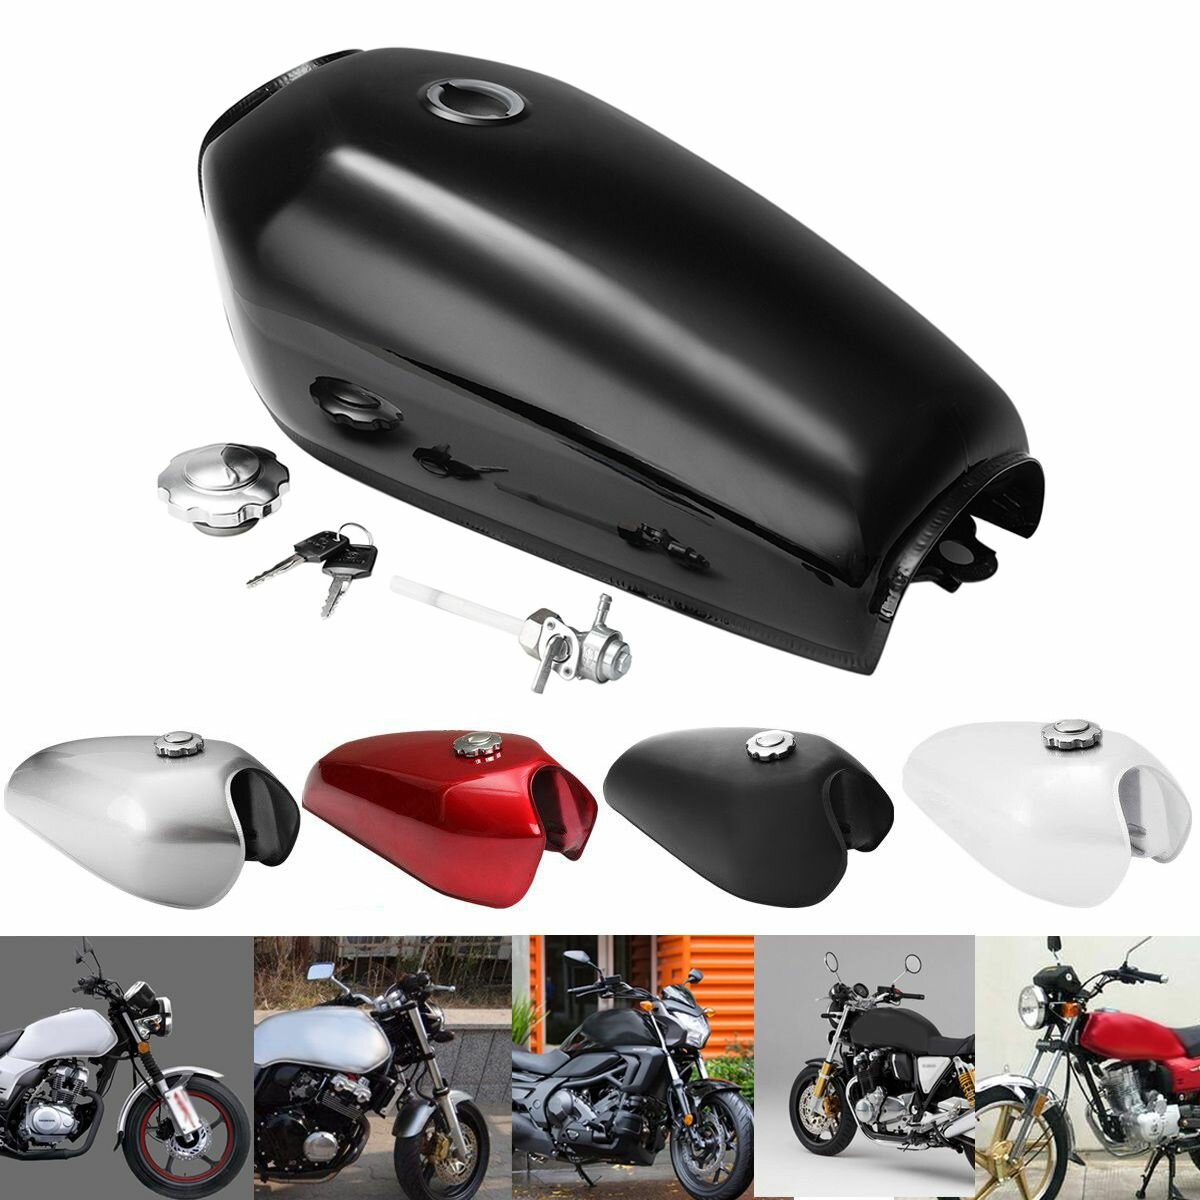 Motorcycle Cafe Racer Vintage Fuel Gas Tank With Tap For Honda CG125 AA001